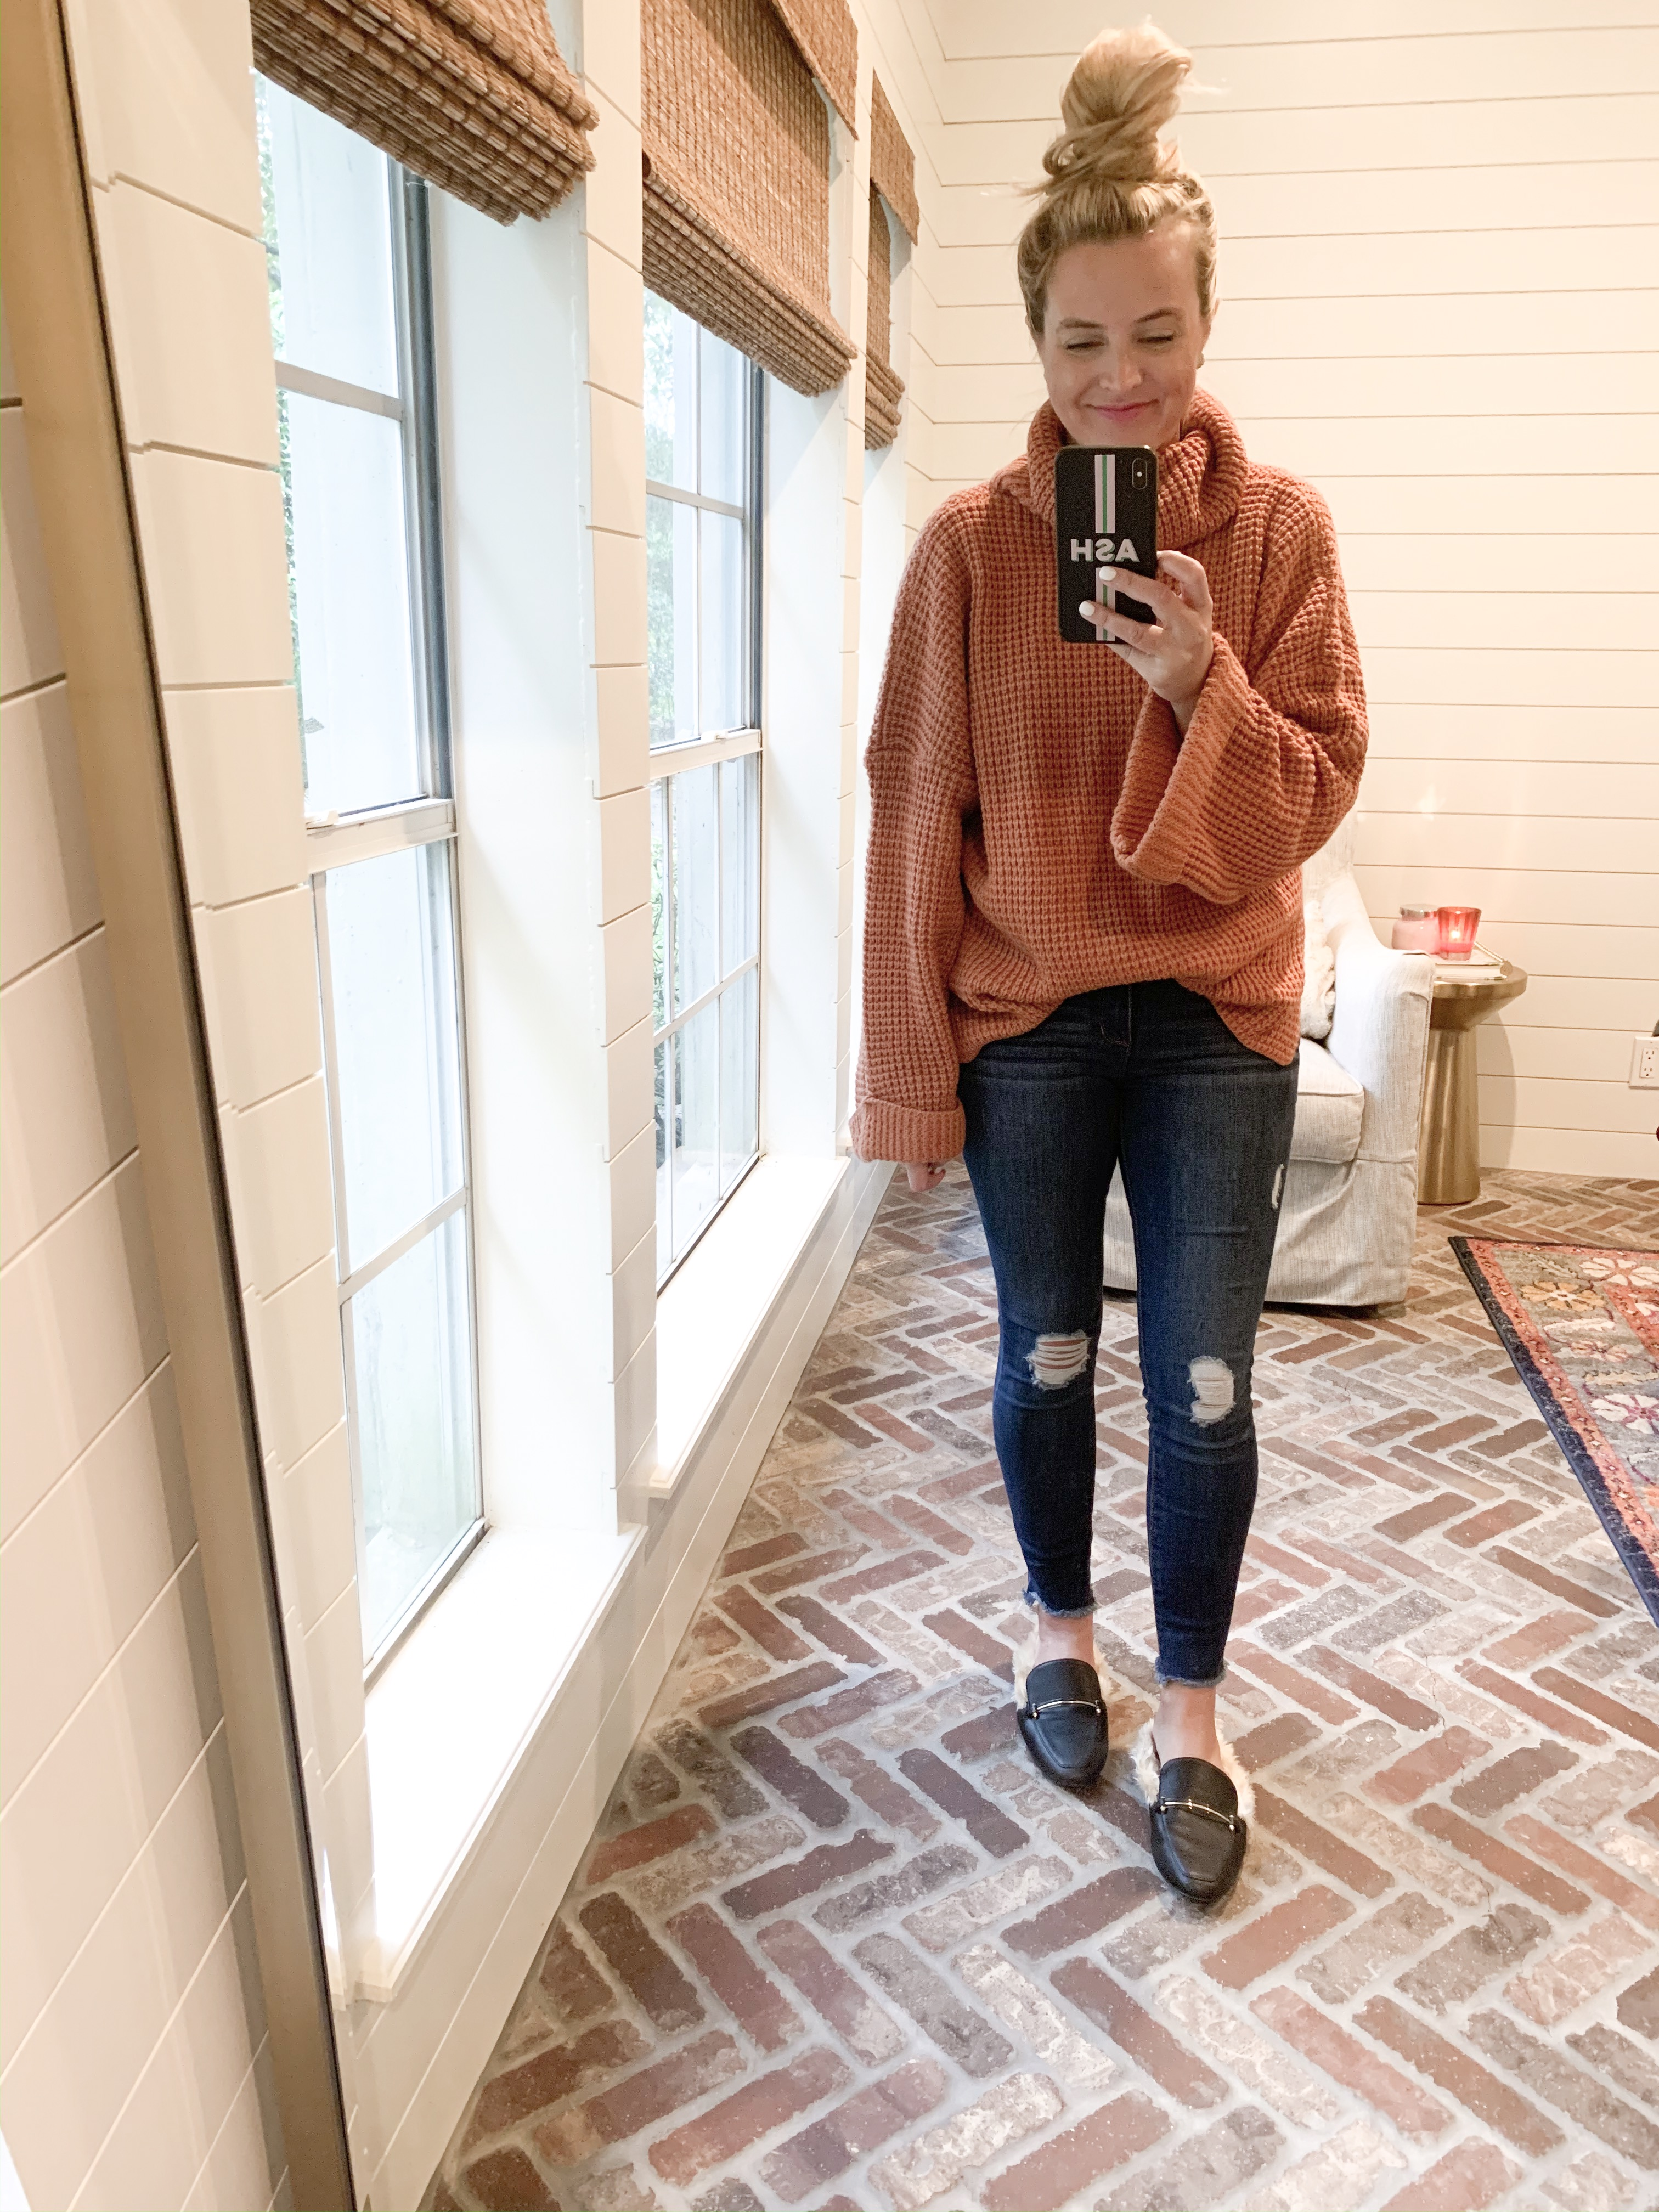 Amazon Haul by popular Houston fashion blog, Fancy Ashley: image of a woman wearing a Amazon Ybenlow Womens Turtleneck Oversized Sweater, Walmart Sofia Jeans by Sofia Vergara Women's Skinny Destructed Mid-Rise Ankle Jeans, and Target Women's Rebe Faux Fur Mules